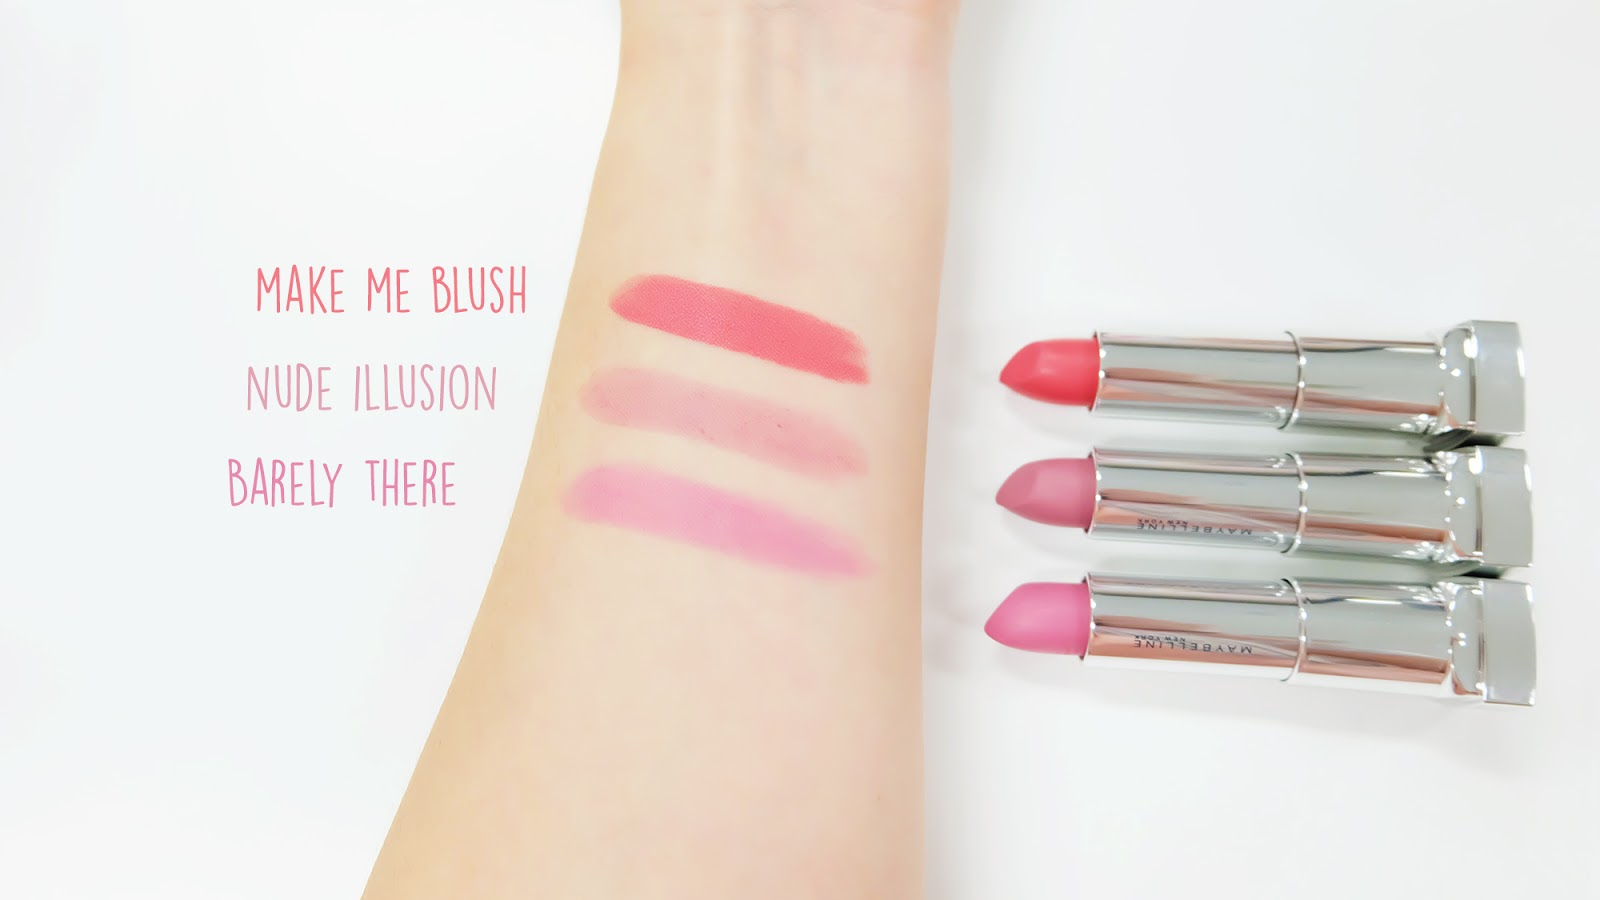 Maybelline The Powder Mattes Nude Shades Swatches | www.bigdreamerblog.com